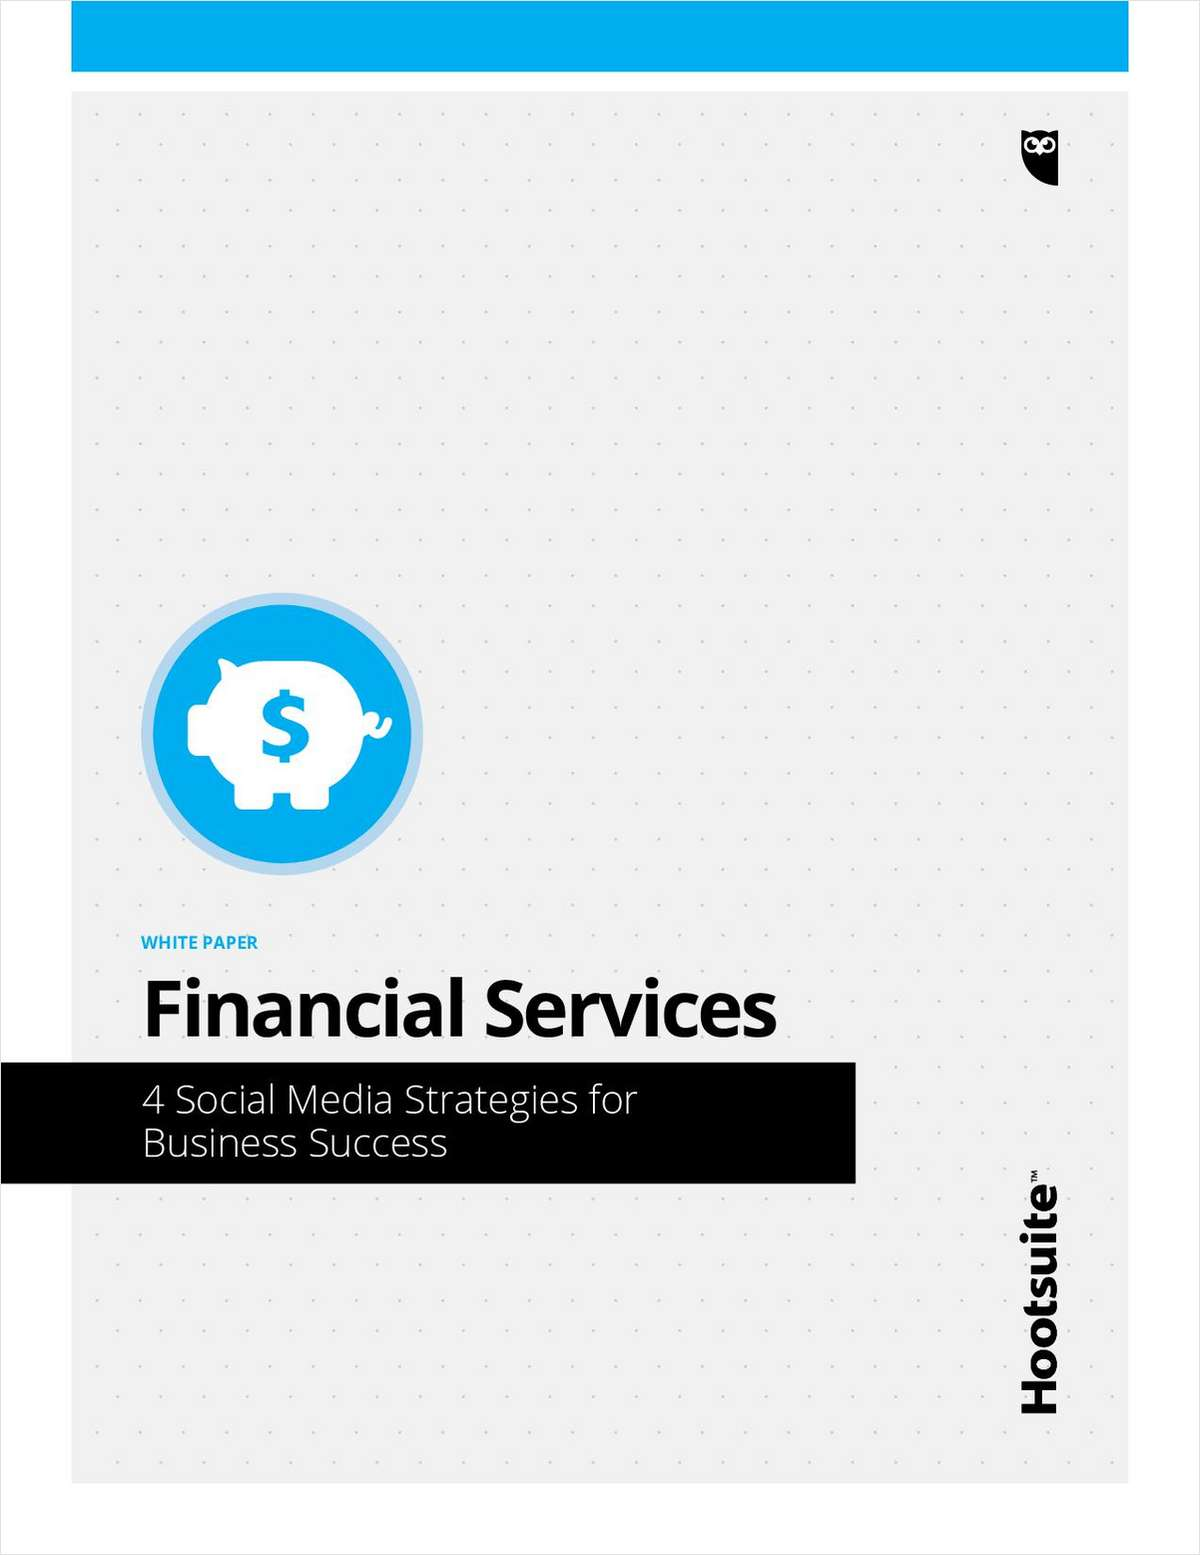 Financial Services: 4 Social Media Strategies for Business Success